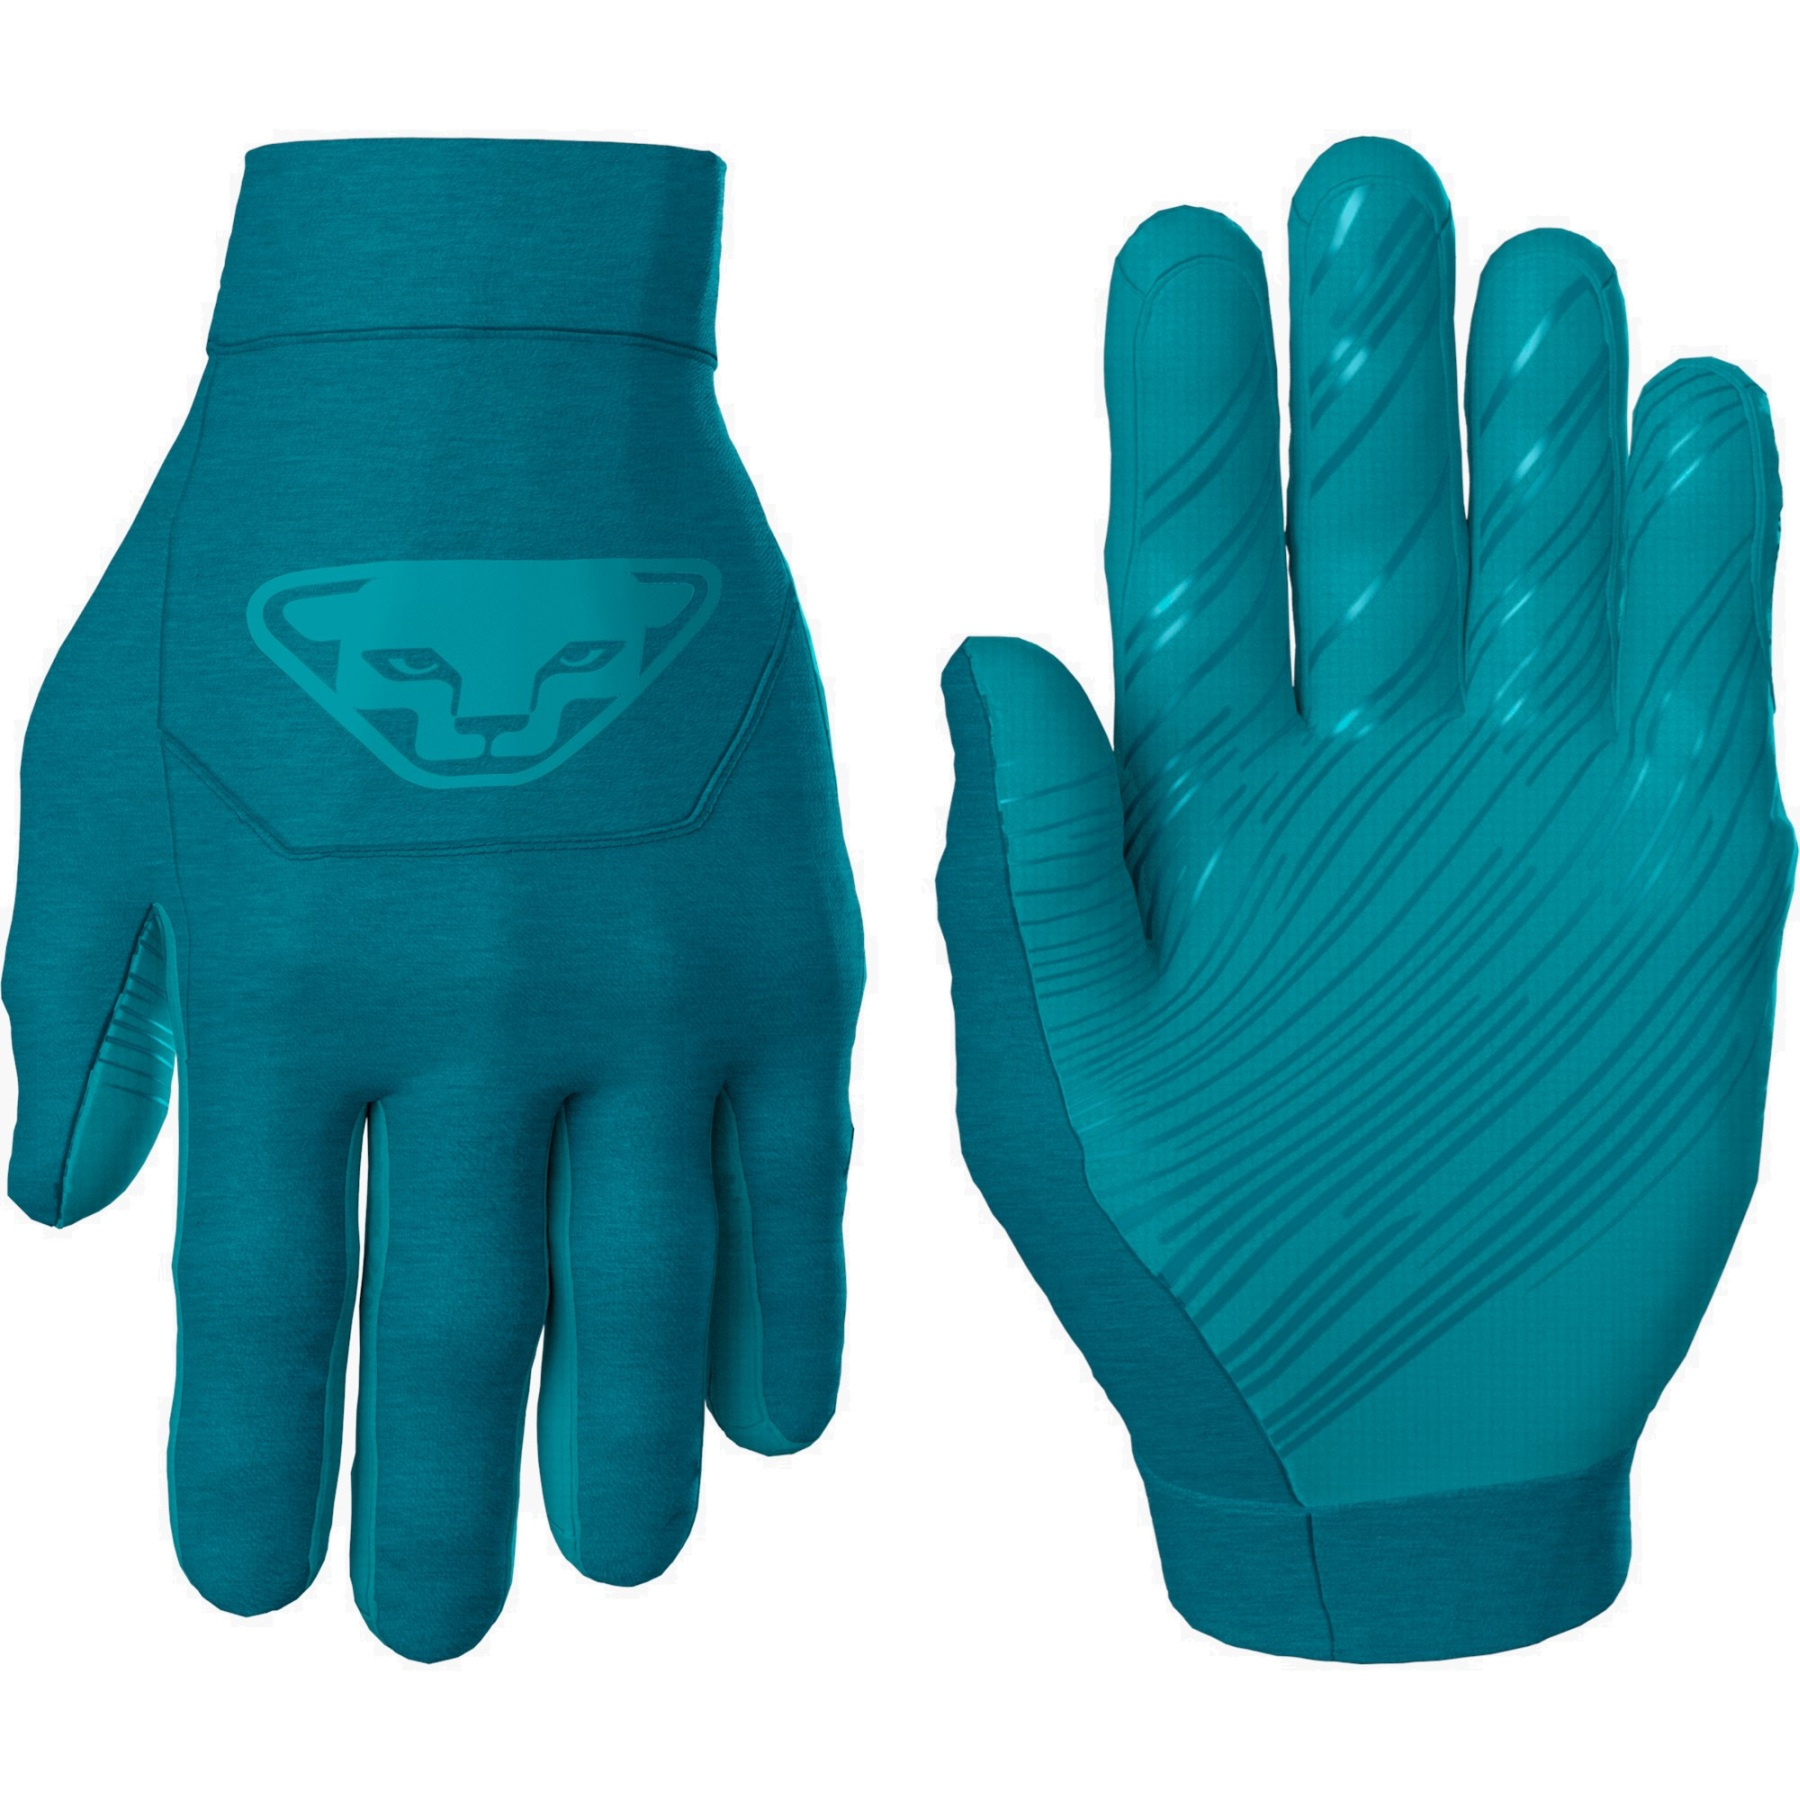 Image of Dynafit Upcycled Thermal Gloves - Malta